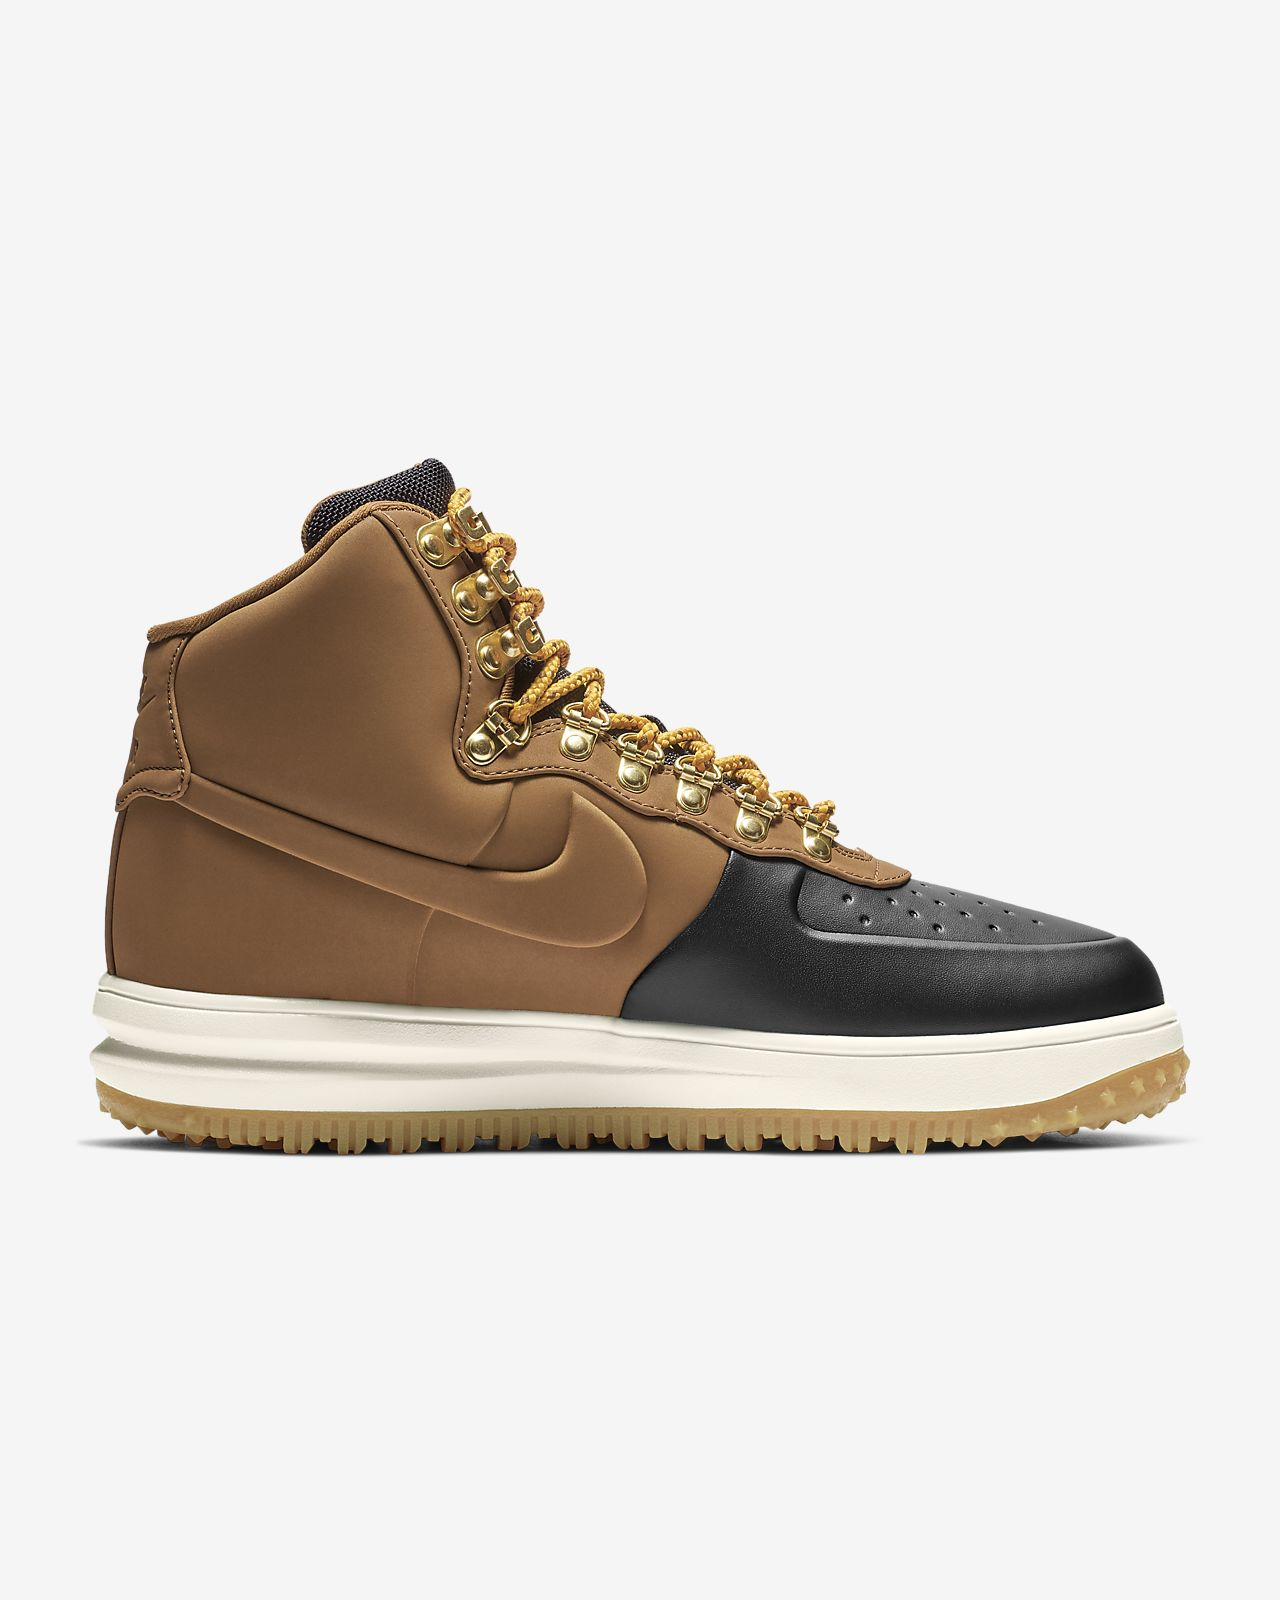 new arrival 2f933 d13e3 Low Resolution Nike Lunar Force 1  18 Men s Duckboot Nike Lunar Force 1  18  Men s Duckboot